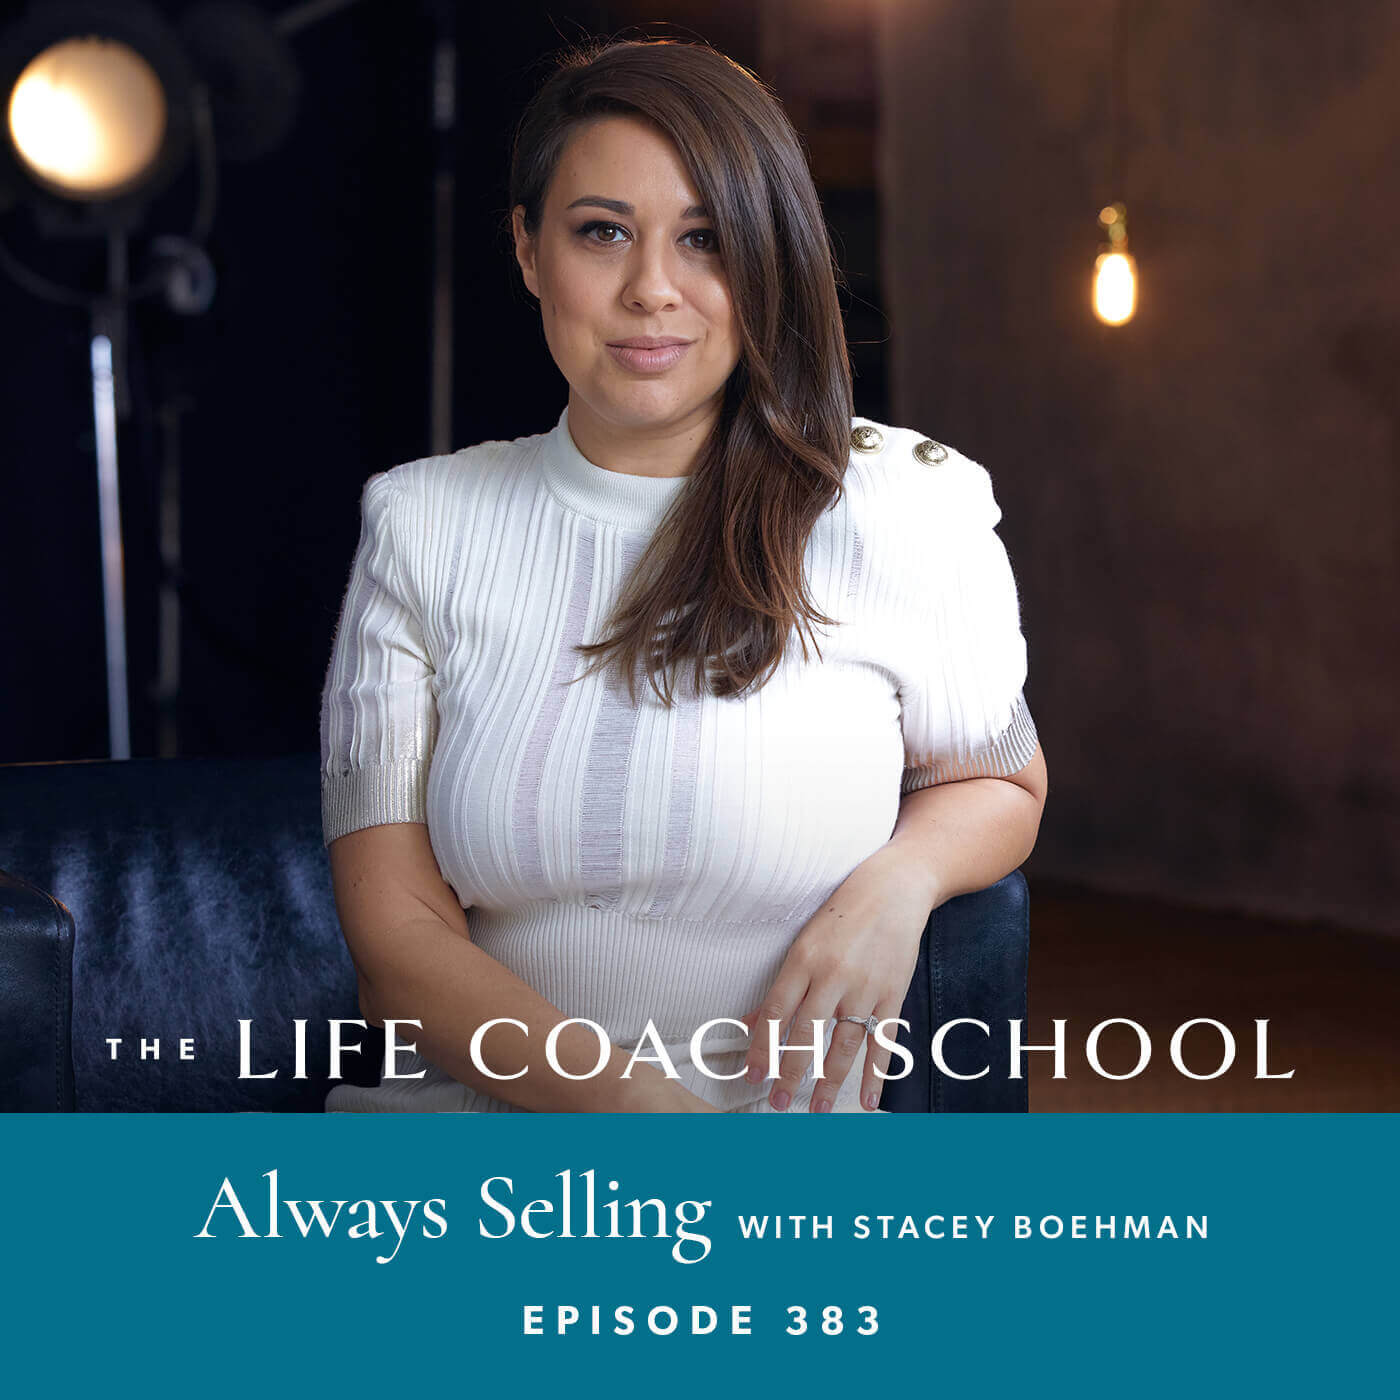 The Life Coach School Podcast with Brooke Castillo   Always Selling with Stacey Boehman